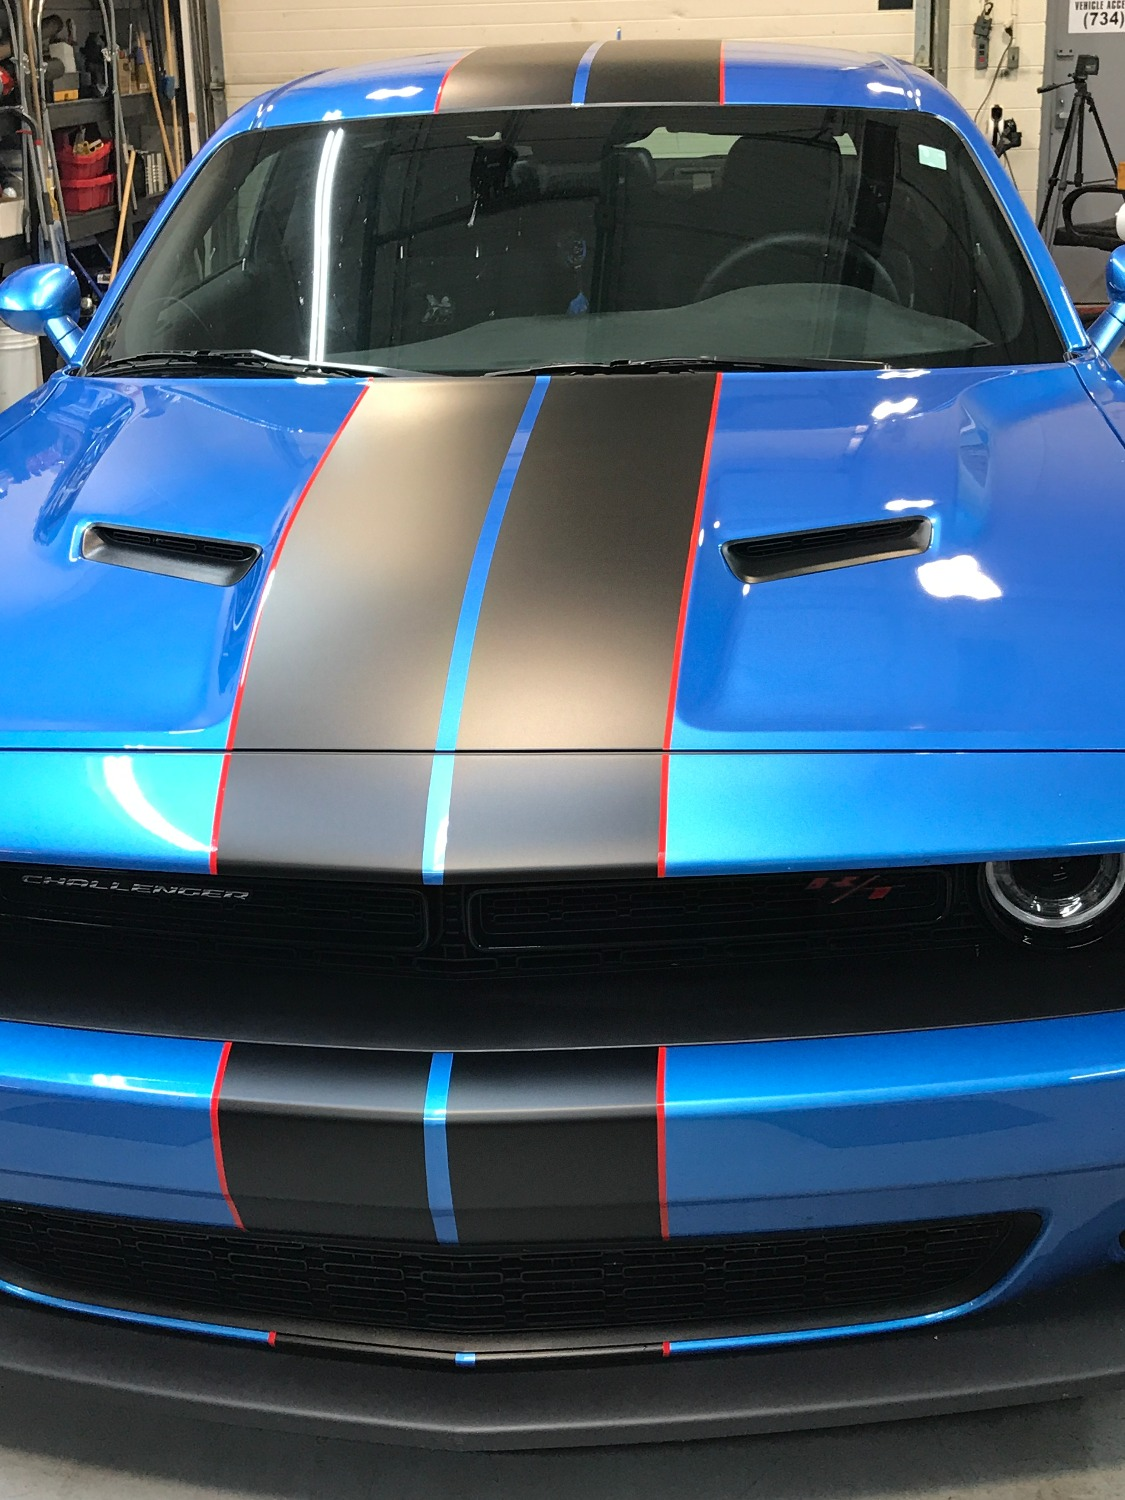 2017 CHALLENGER STRIPES AFTER